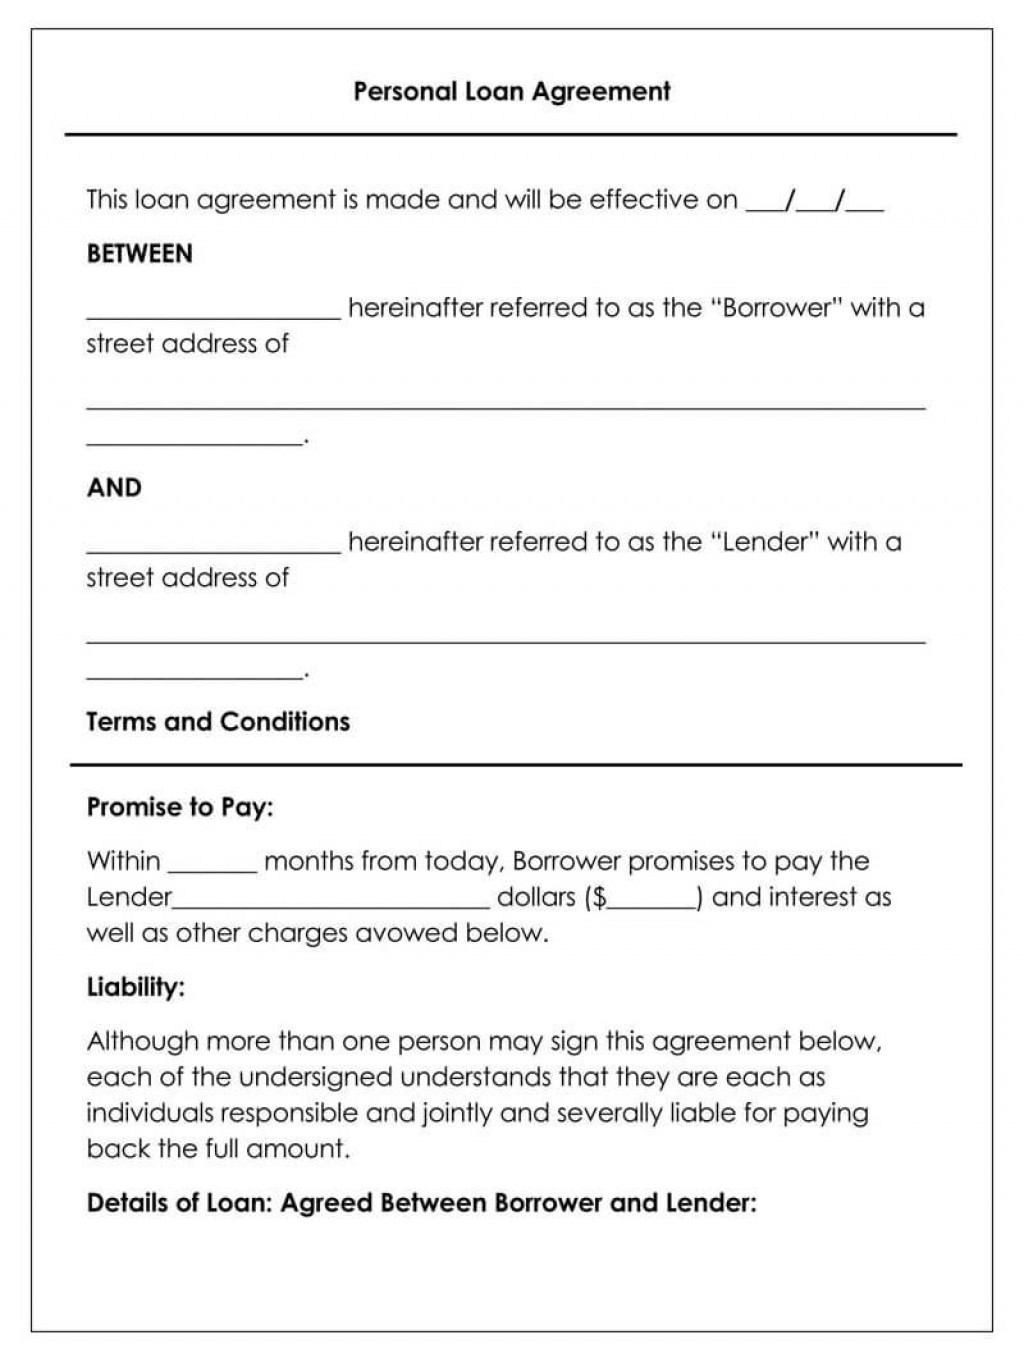 008 Fearsome Loan Agreement Template Free Image  Download Scotland Ontario WordLarge